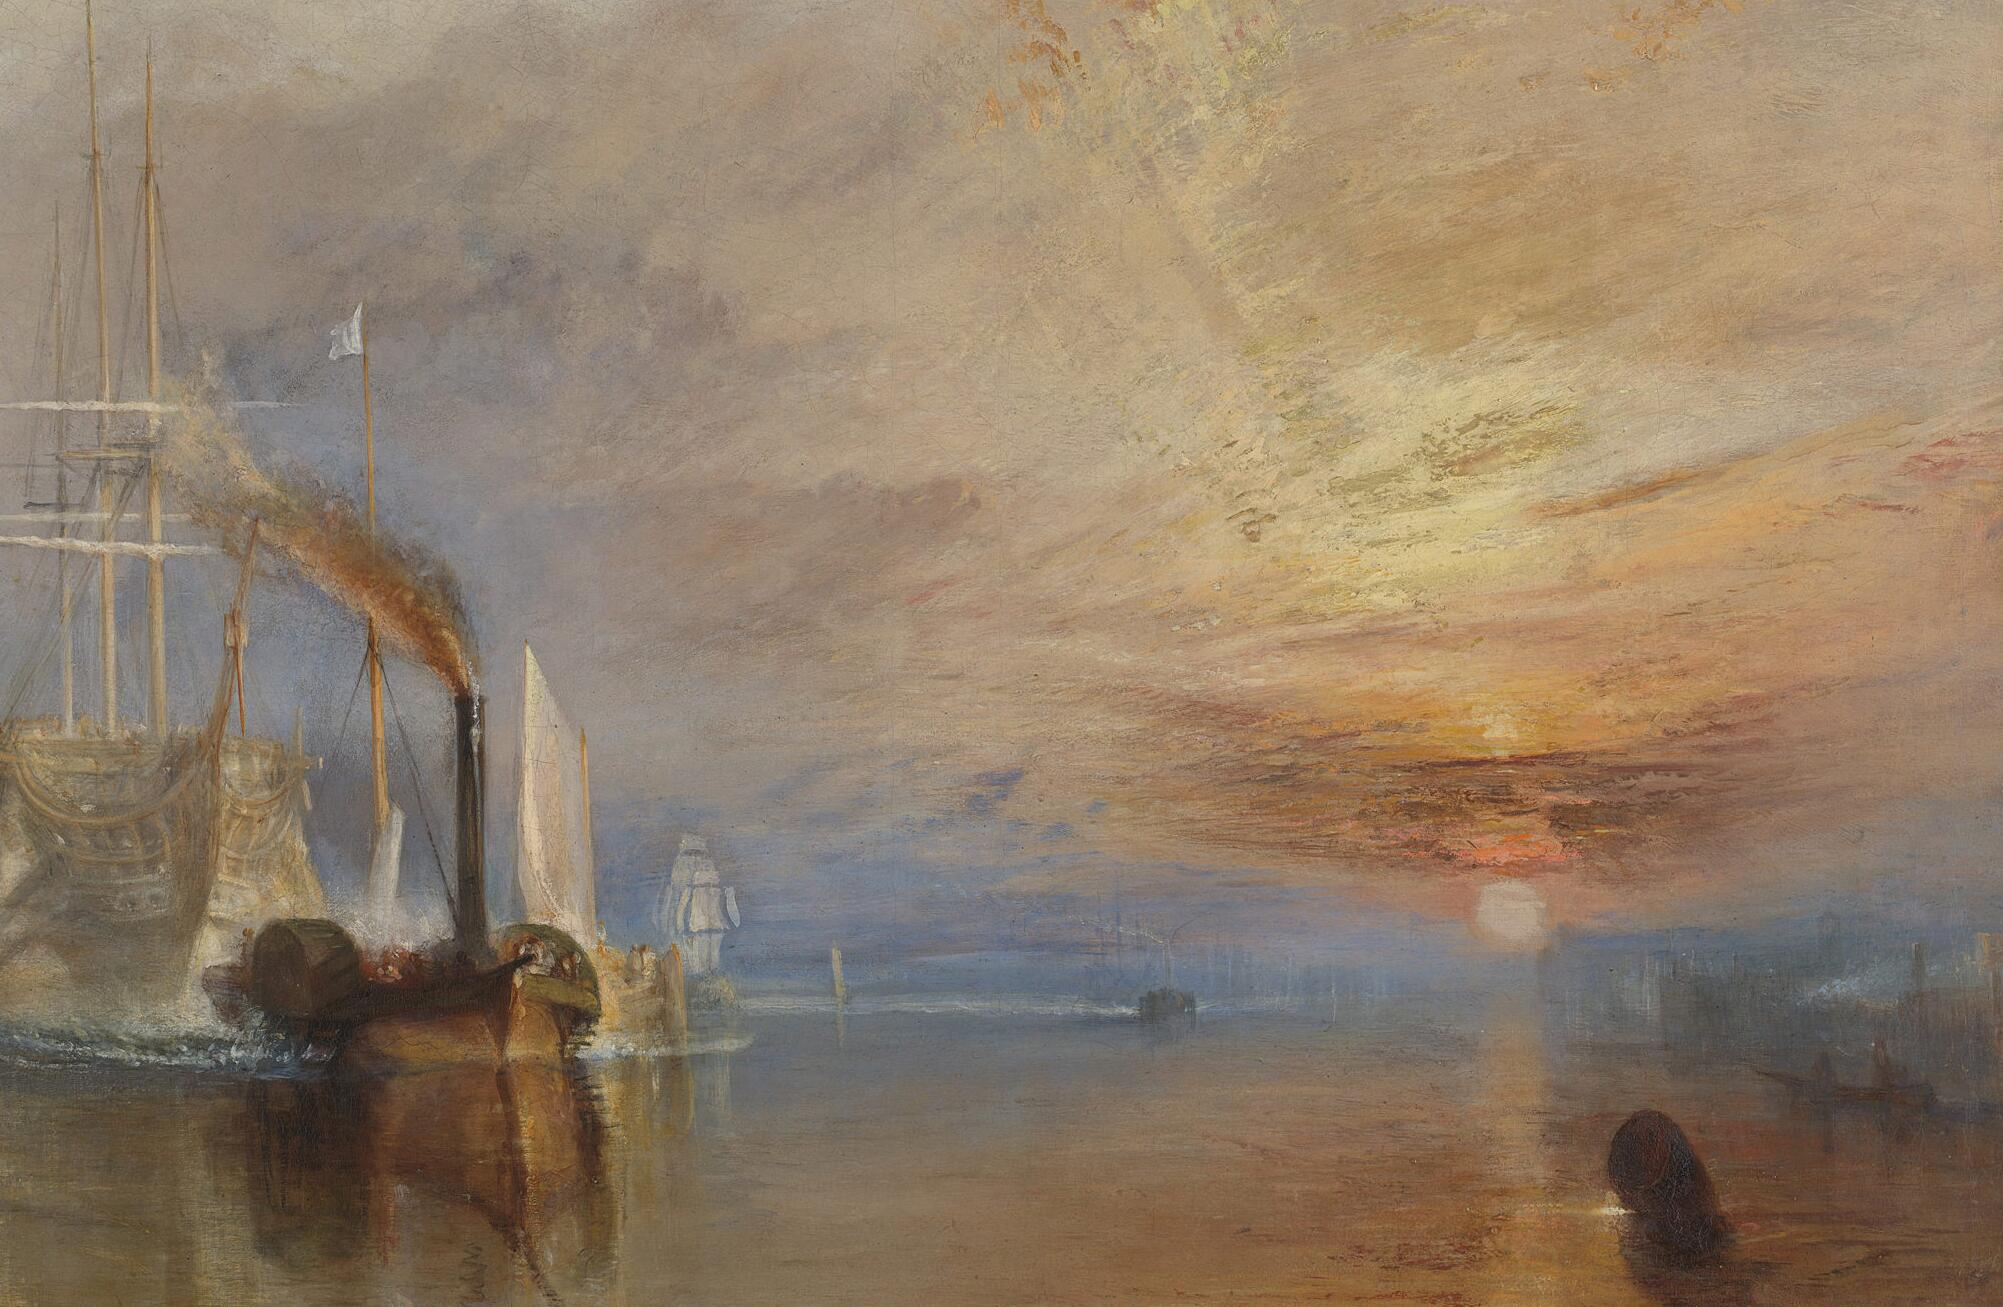 Joseph Mallord William Turner, <i>The Fighting Temeraire</i>, 1839, oil on canvas, 90.7 x 121.6 cm. Collection of The National Gallery, London (NG524). Digital image courtesy of The National Gallery, London (All rights reserved).